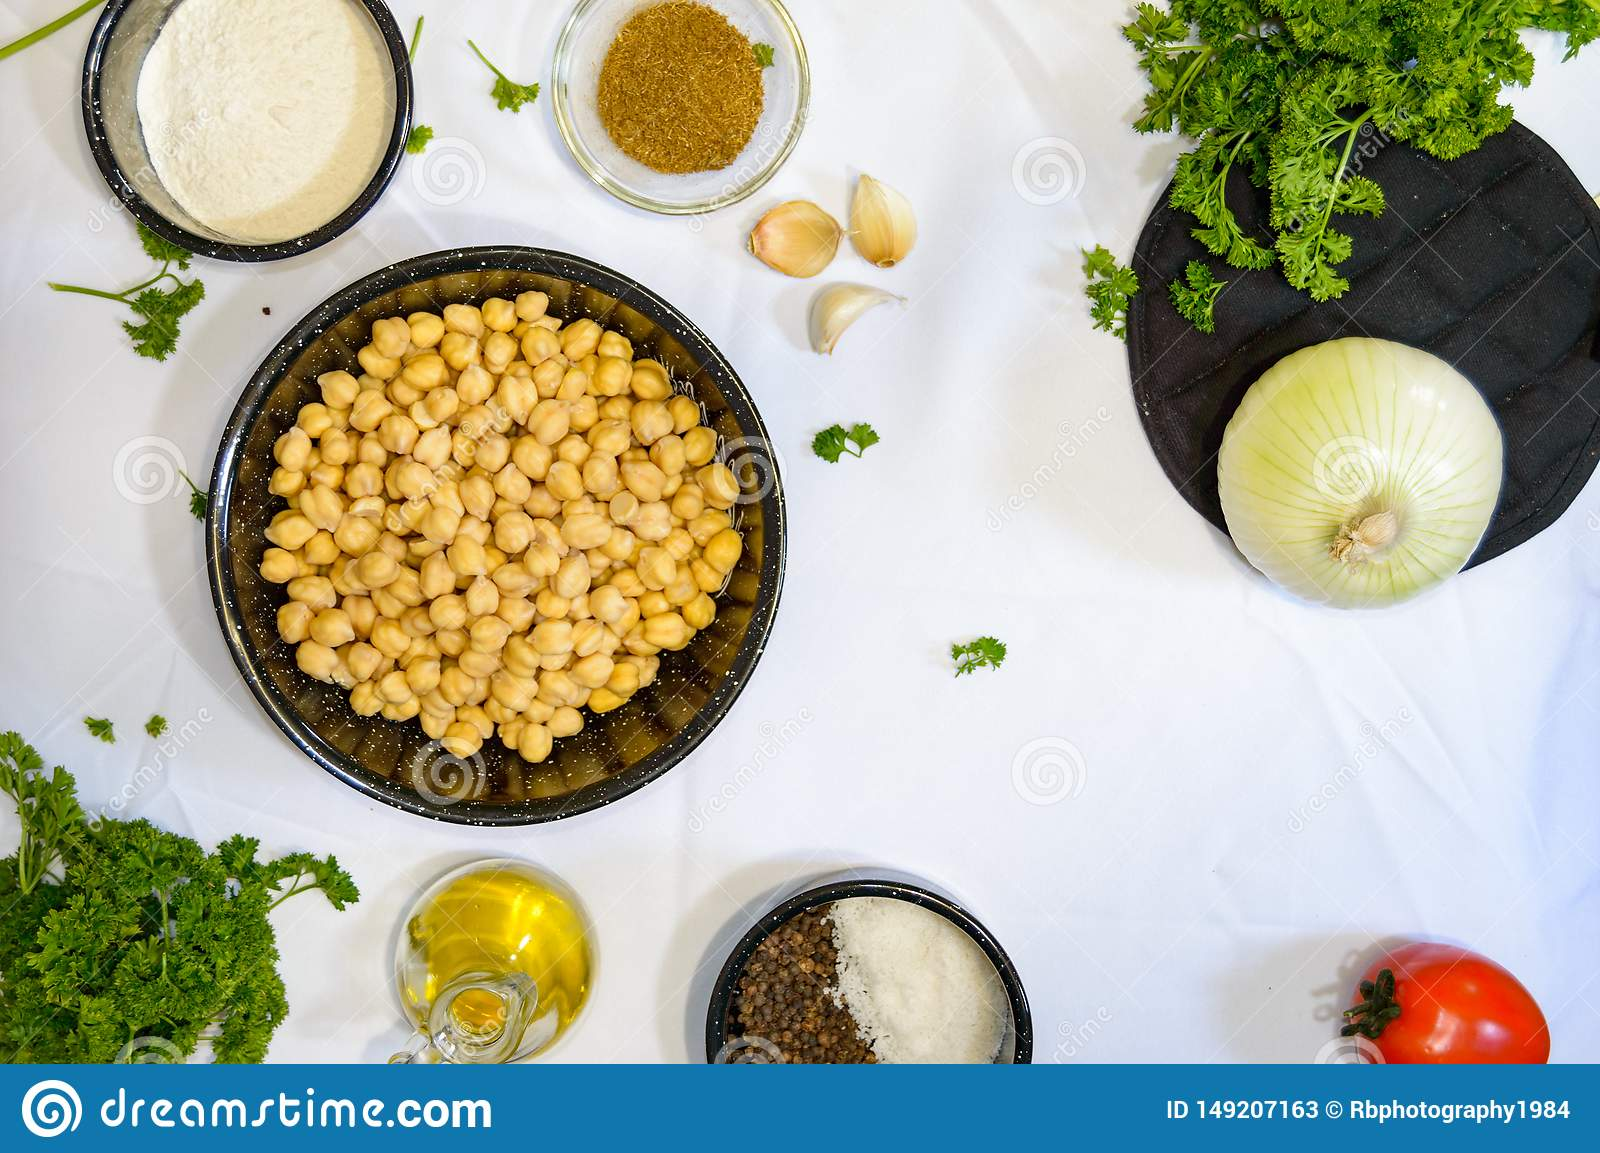 Ingredients For Cooking Middle Eastern Food Stock Image